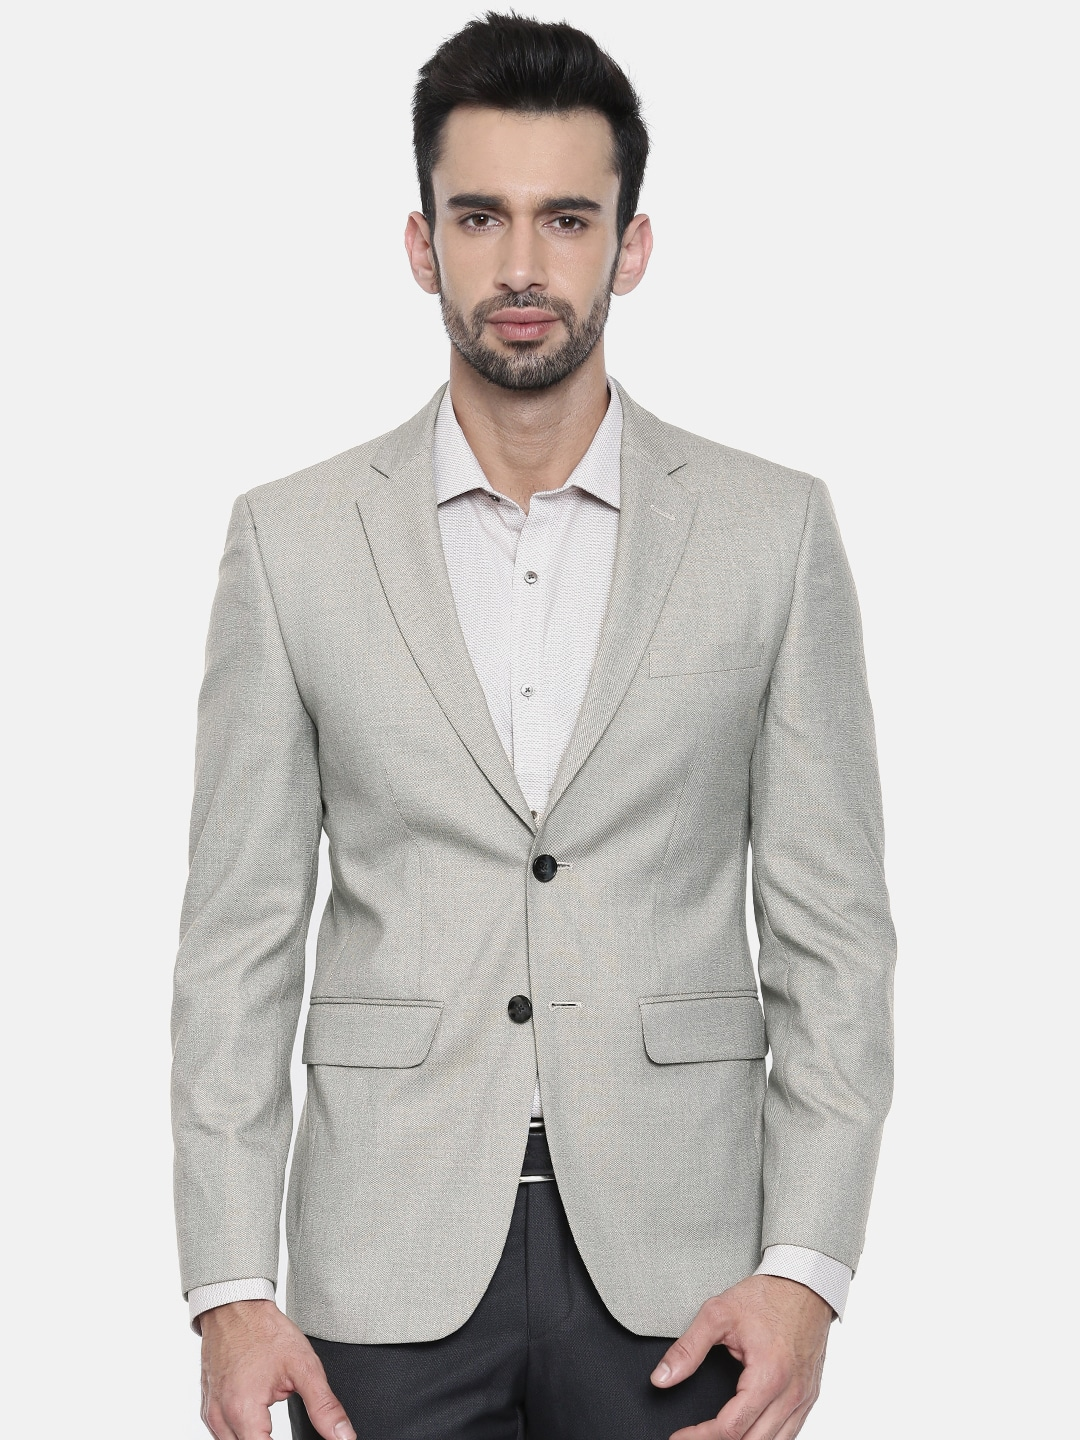 4f8c0c3be454 Peter England - Buy Peter England Clothing Online in India